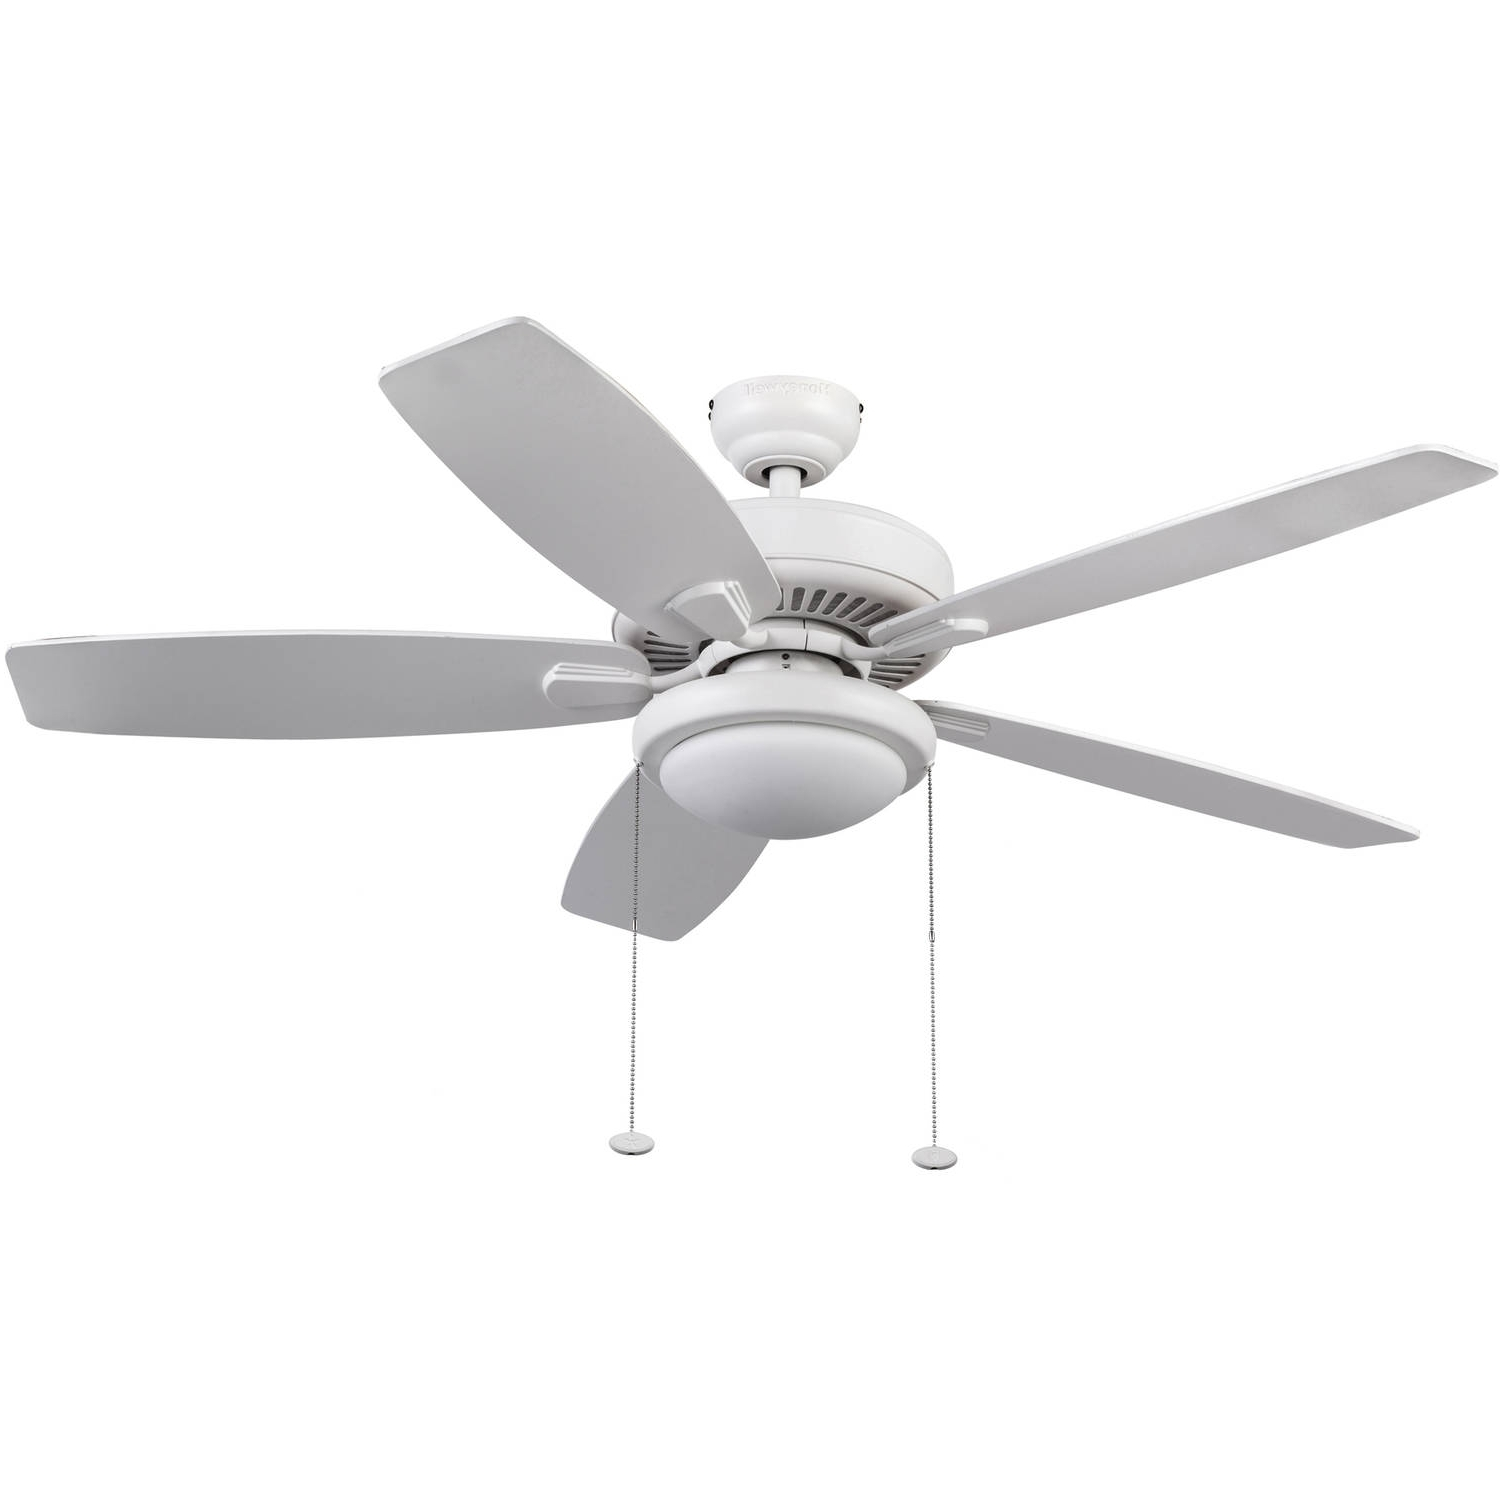 """Recent Outdoor Ceiling Fans With Lights At Walmart Intended For 52"""" Honeywell Blufton Outdoor Ceiling Fan, White – Walmart (View 2 of 20)"""